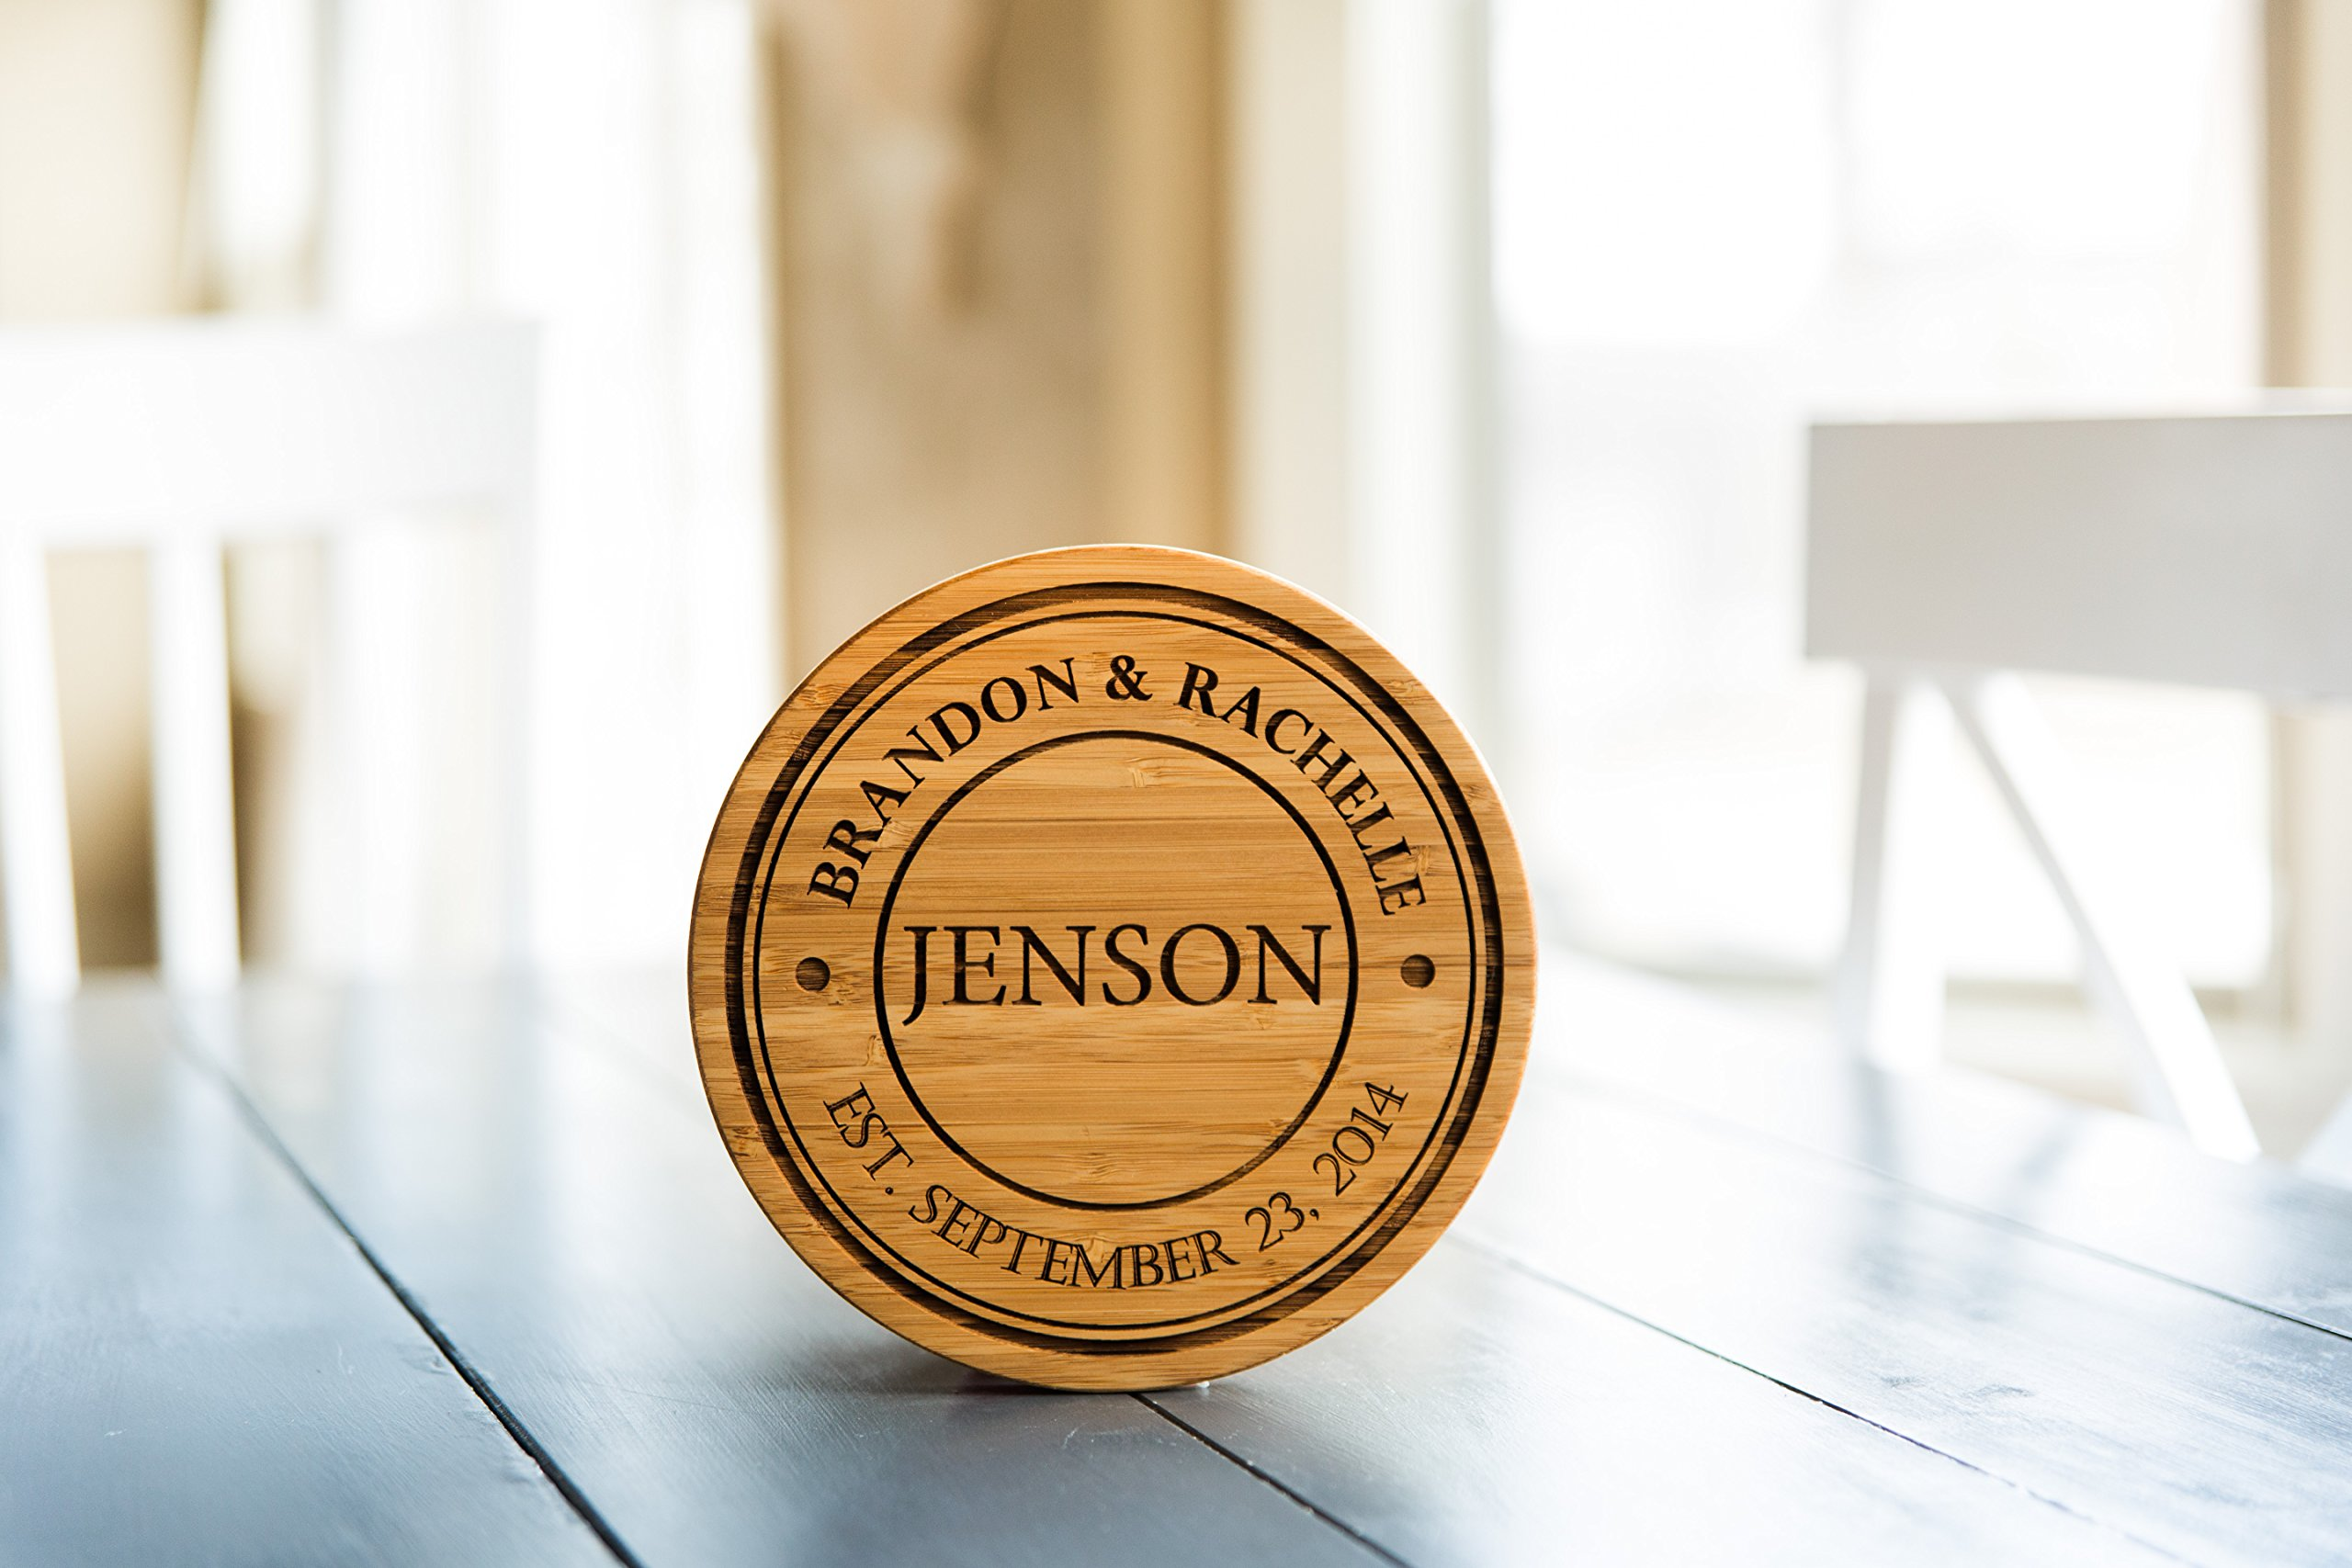 Personalized Coasters Trivets for Hot Dishes - 7inch Kitchen Wood Trivet, Personalized Wedding Gifts (Jenson Design, Set of 2)